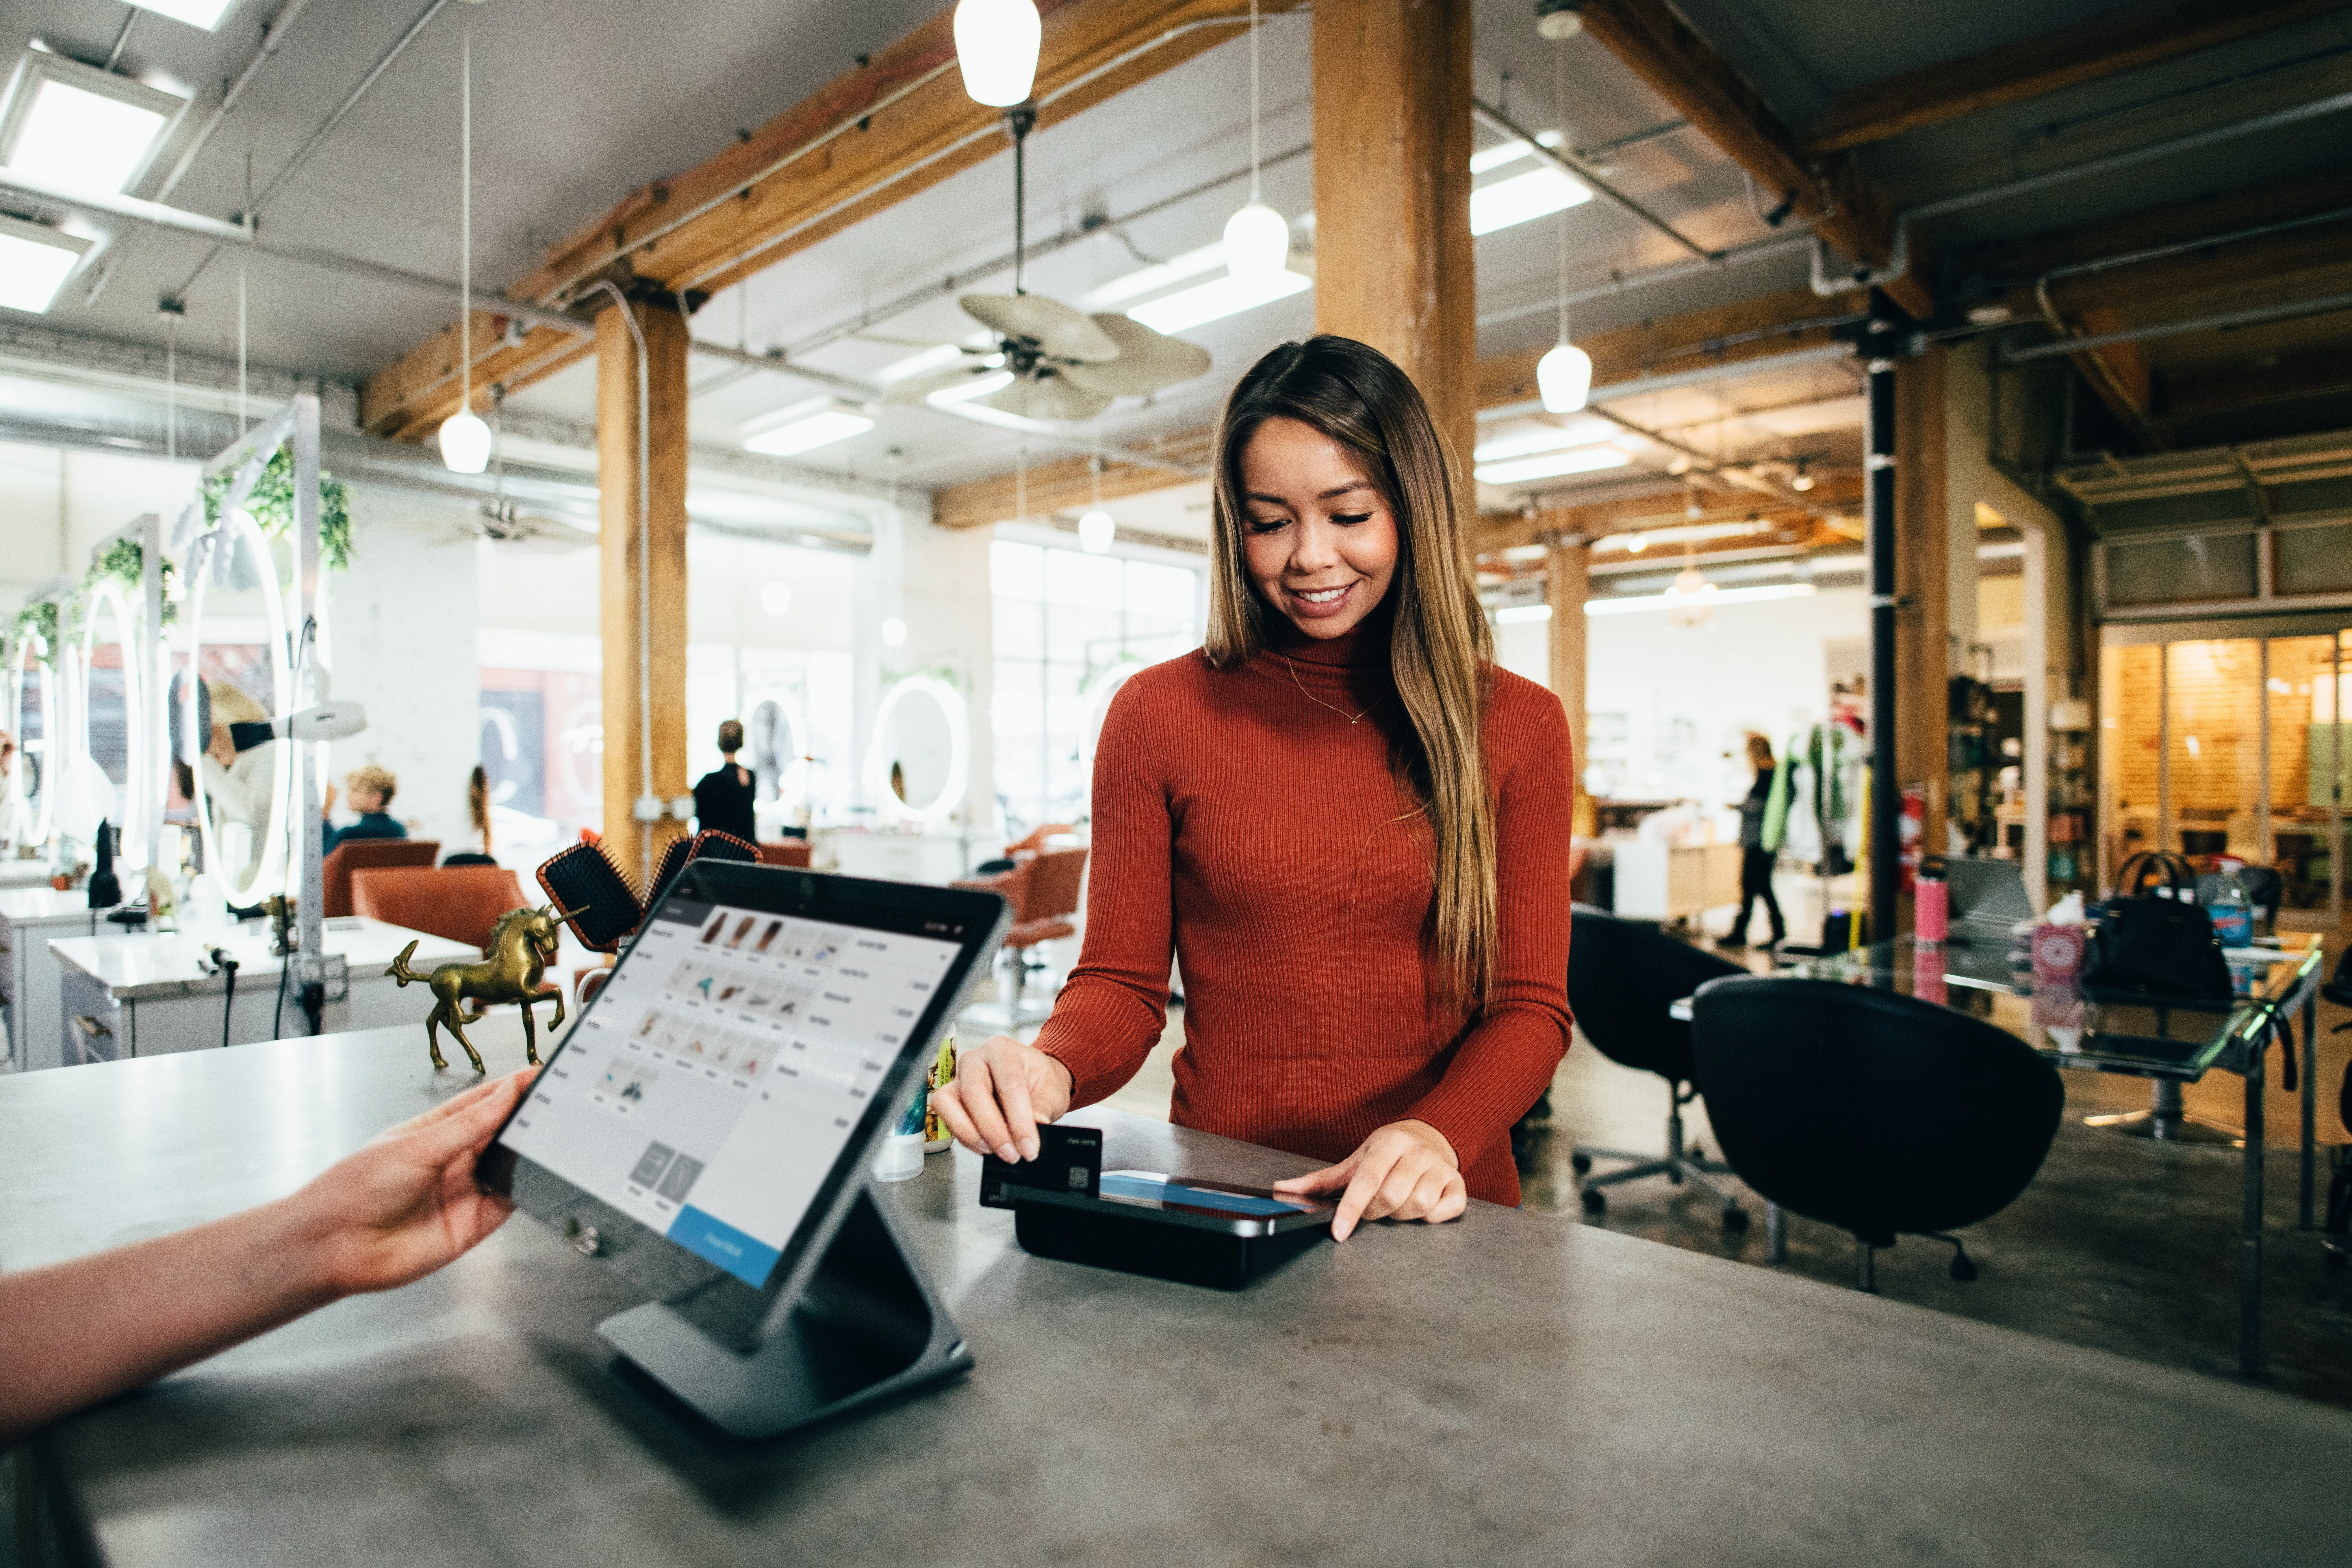 The G2 on Customer Experience: CX Technology